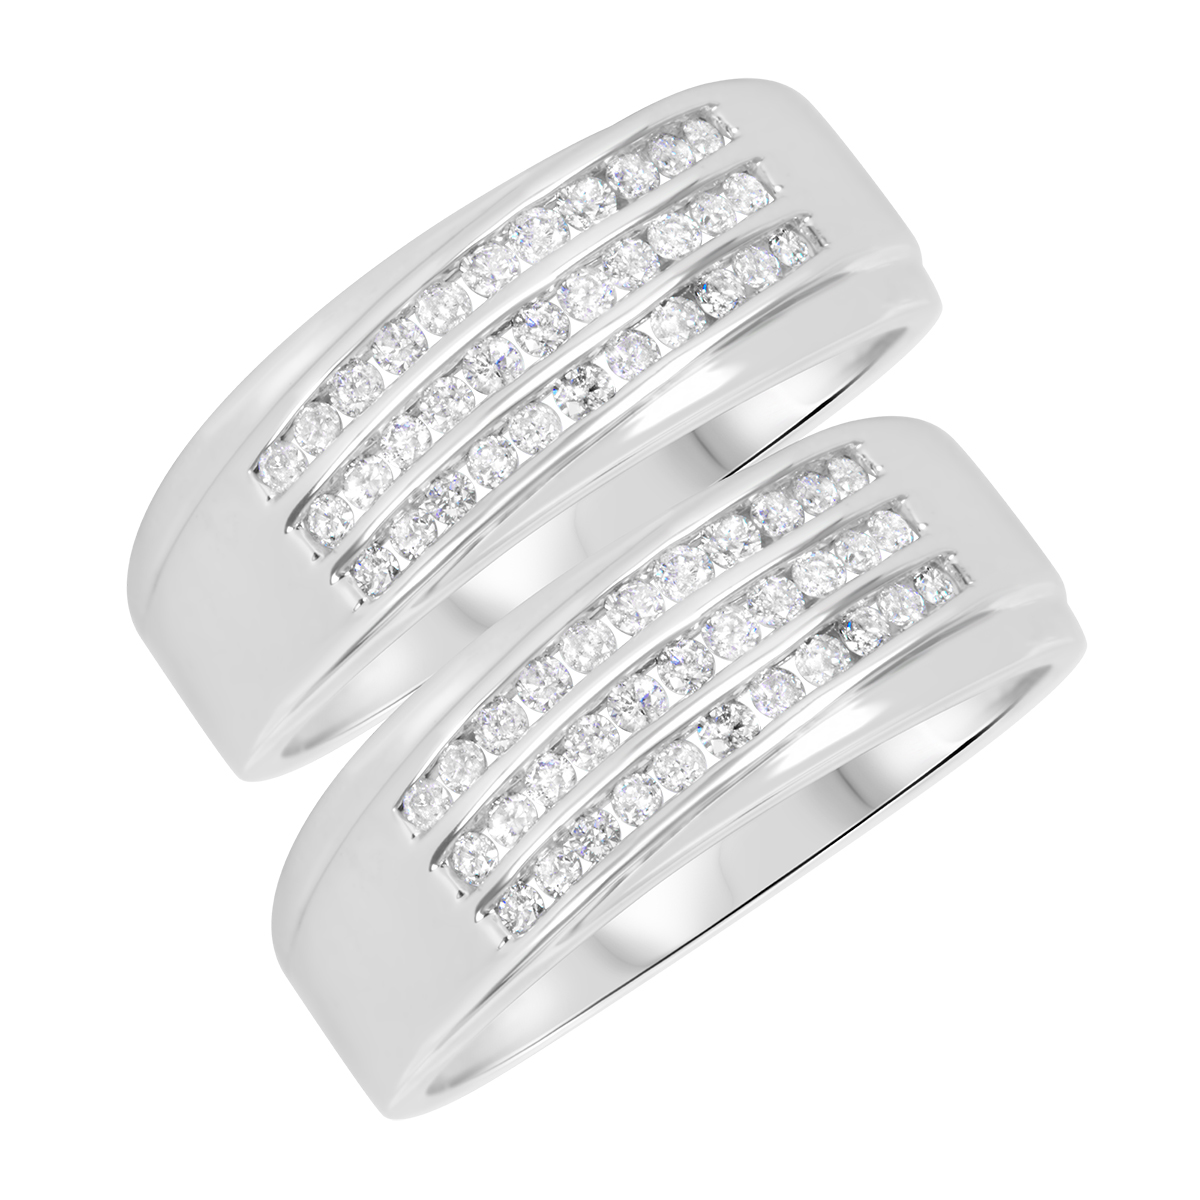 7/8 Carat T.W. Round Cut Mens  Same Sex Wedding Band Set 14K White Gold- Size 8